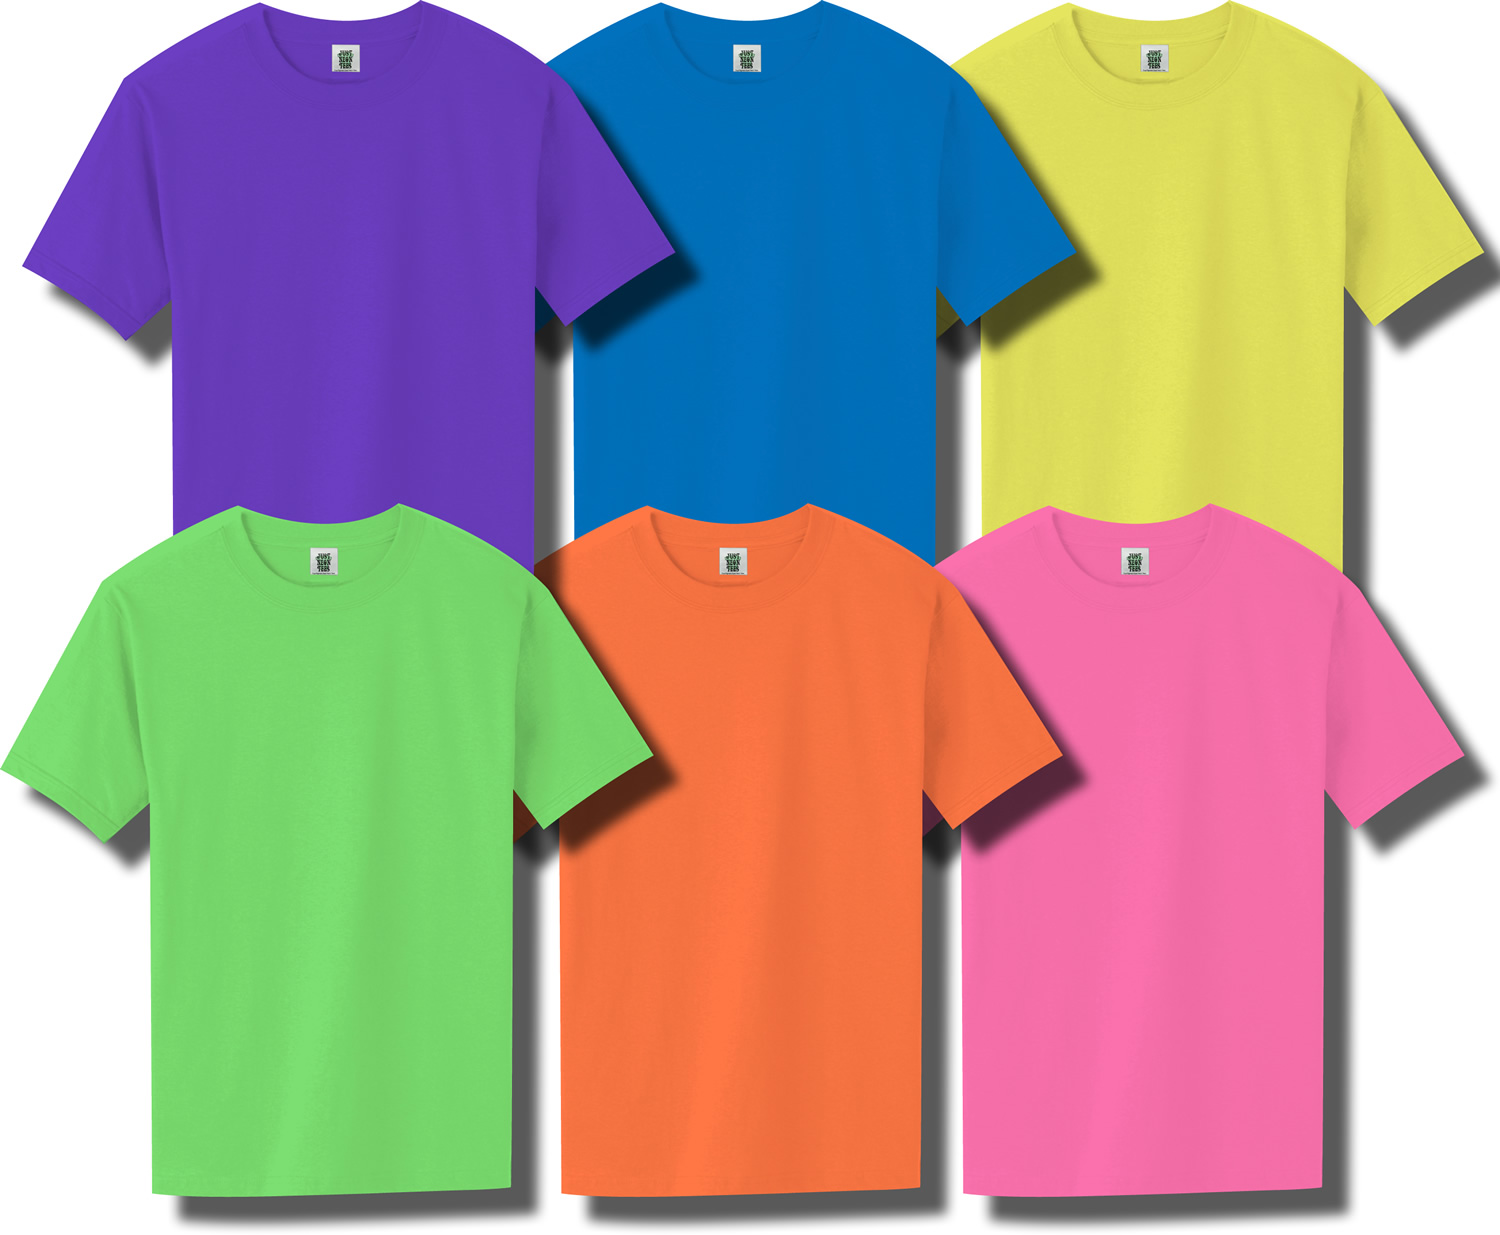 Neon Color Shirts 28 Images Neon Pot Leaf Asst Colors